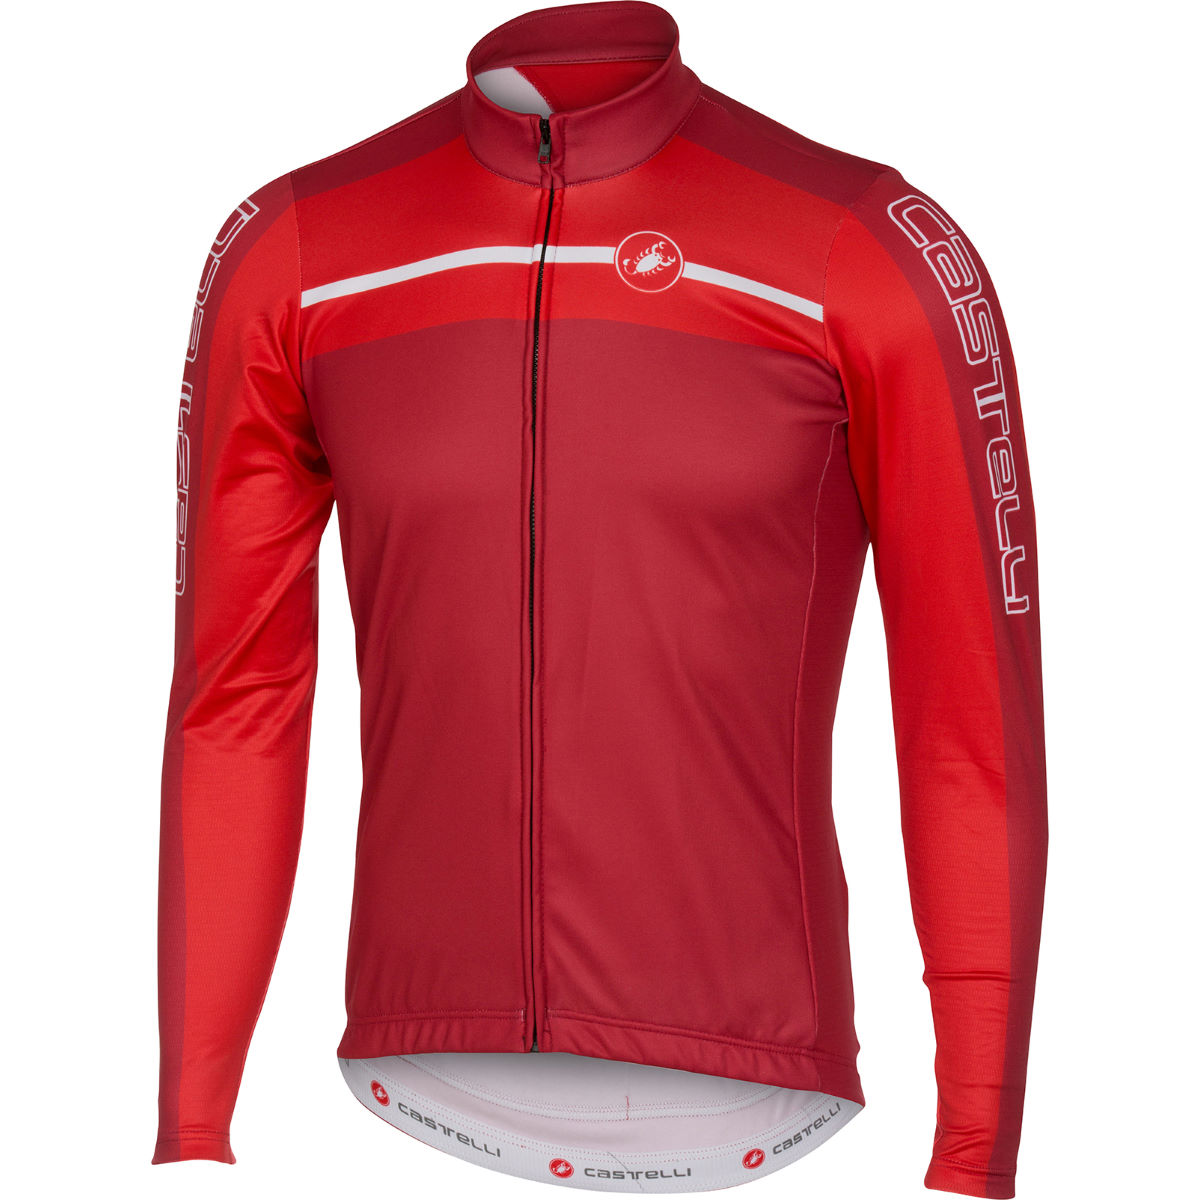 Maillot Castelli Velocissimo (fermeture zippée intégrale, manches longues) - XL Red/Ruby Red Maillots vélo à manches longues